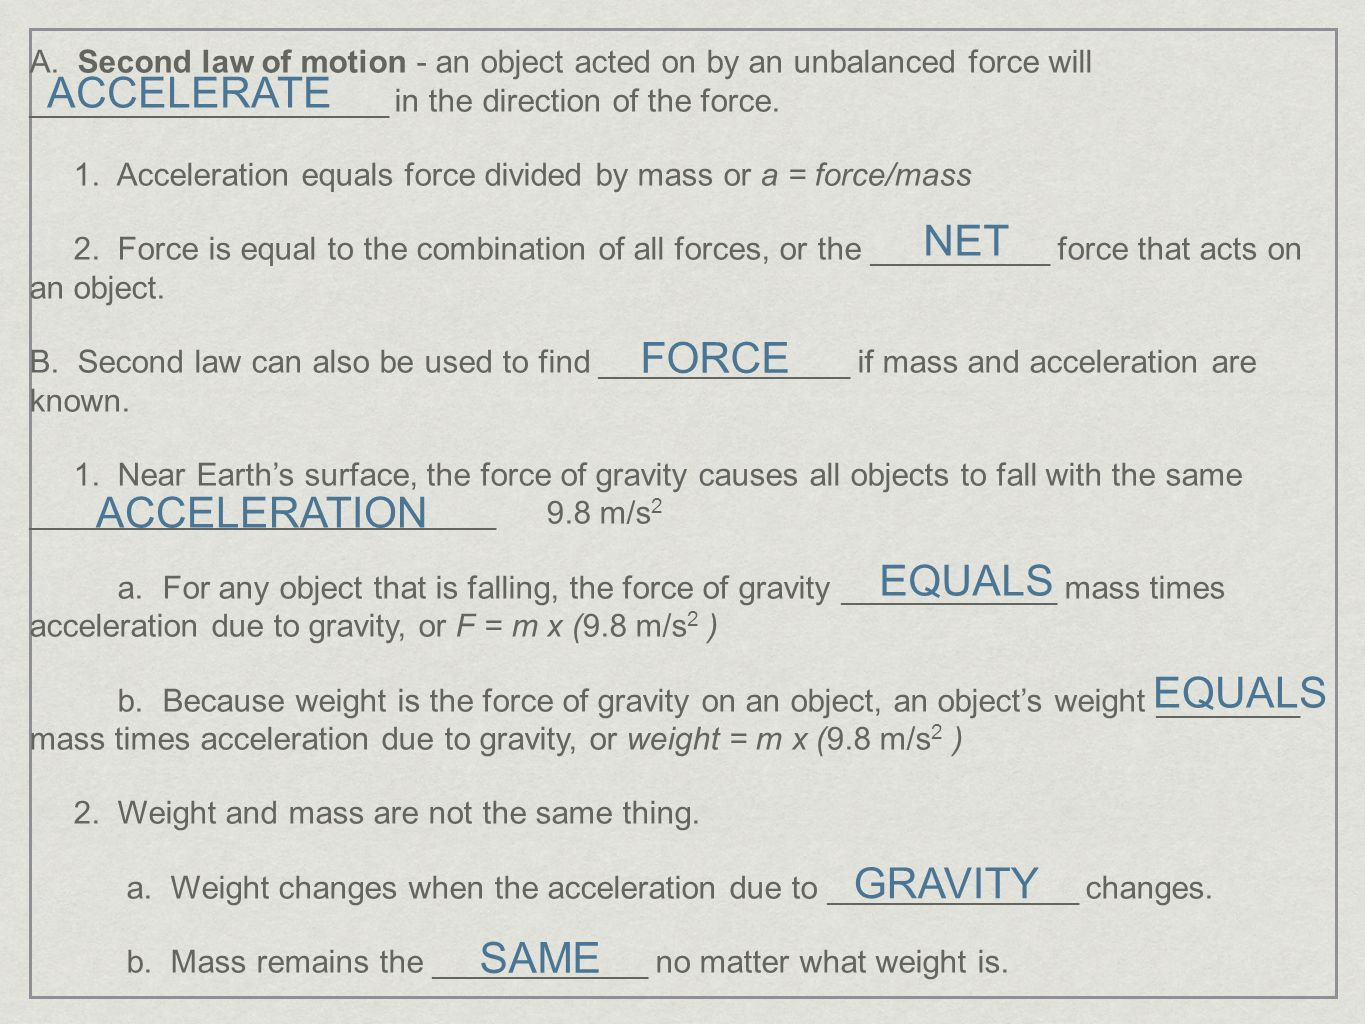 ACCELERATE NET FORCE ACCELERATION EQUALS EQUALS GRAVITY SAME